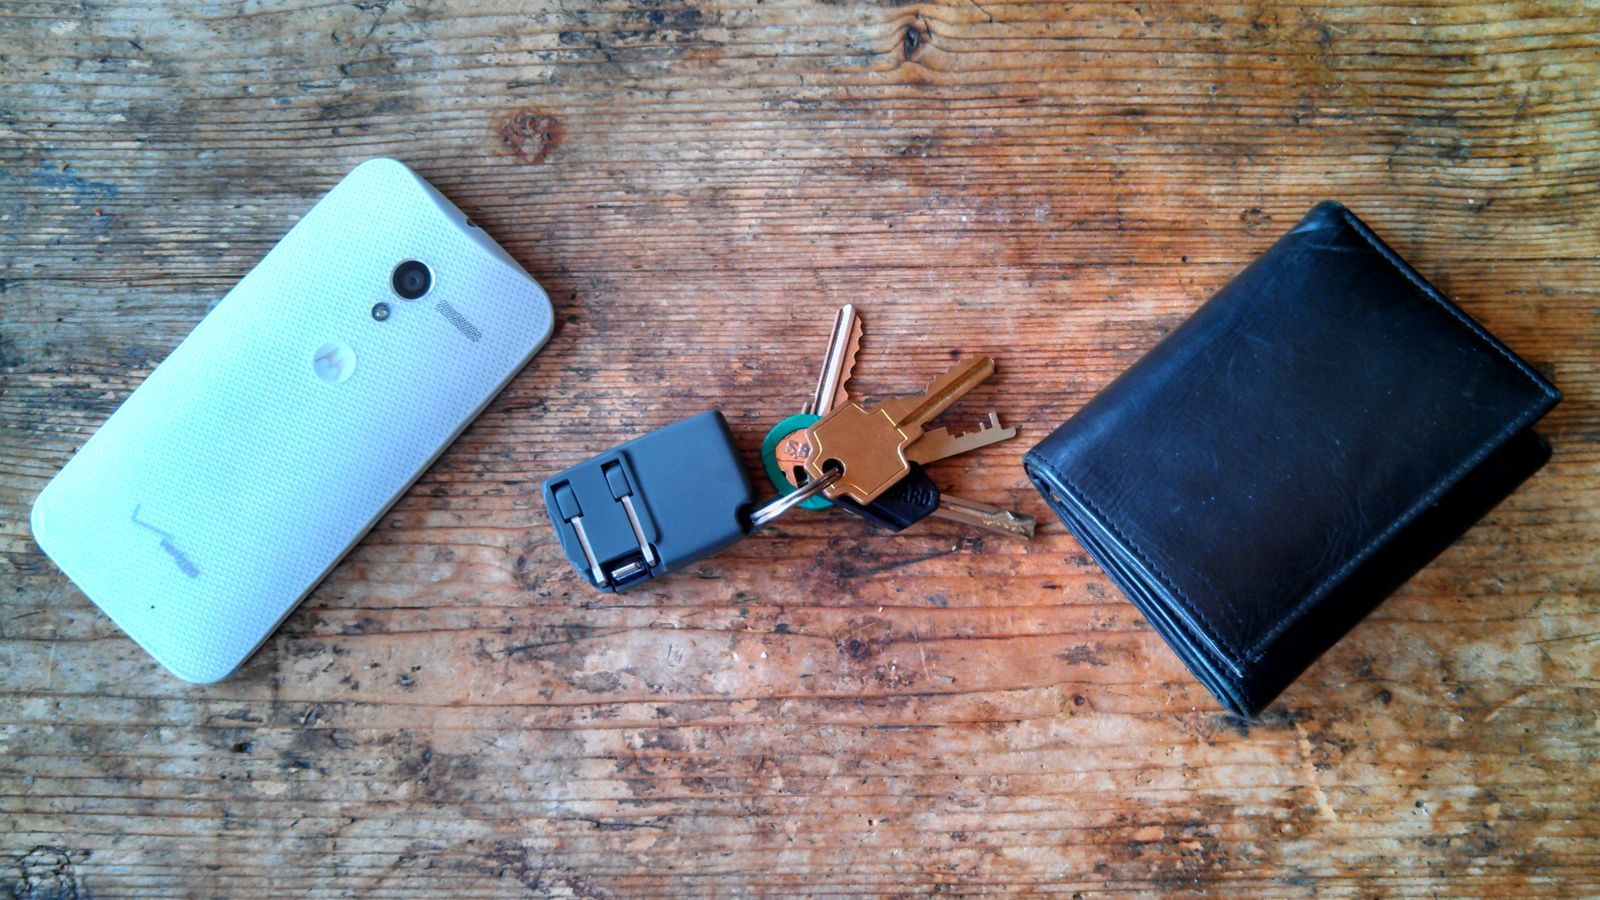 Chargerito - The World's Smallest Phone Charger. This thing is necessary. As big as a key fob and sturdy enough to charge your iPhone.